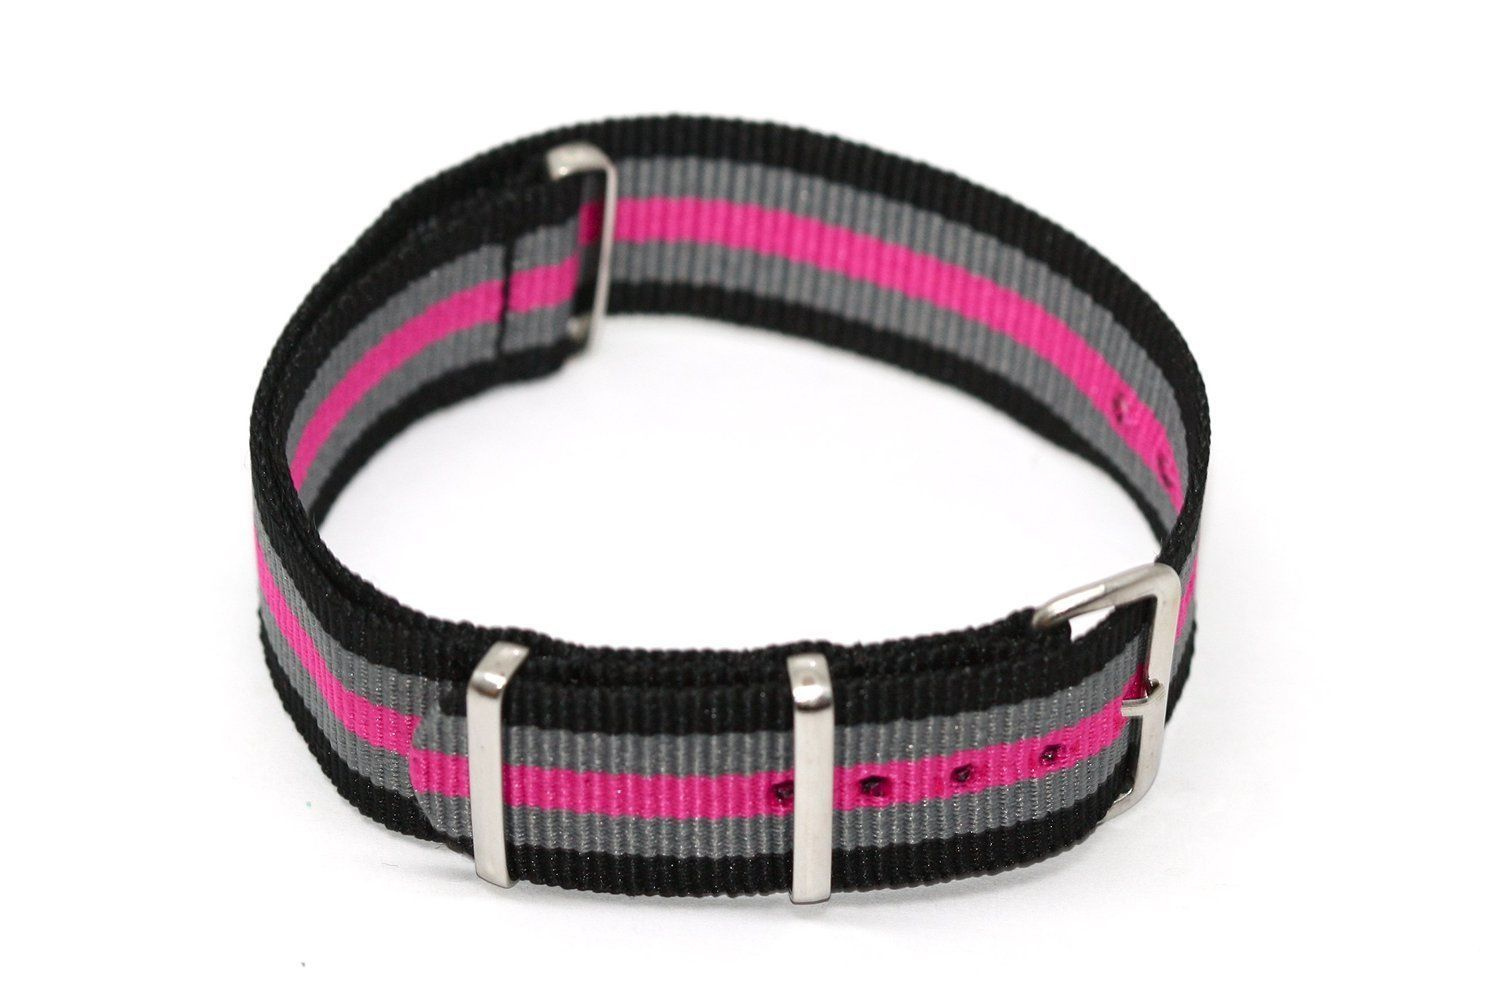 Primary image for 20MM PINK GRAY BLACK NYLON FIT G10 BALLISTIC RAF MILITARY SPORT DIVER WATCH BAND